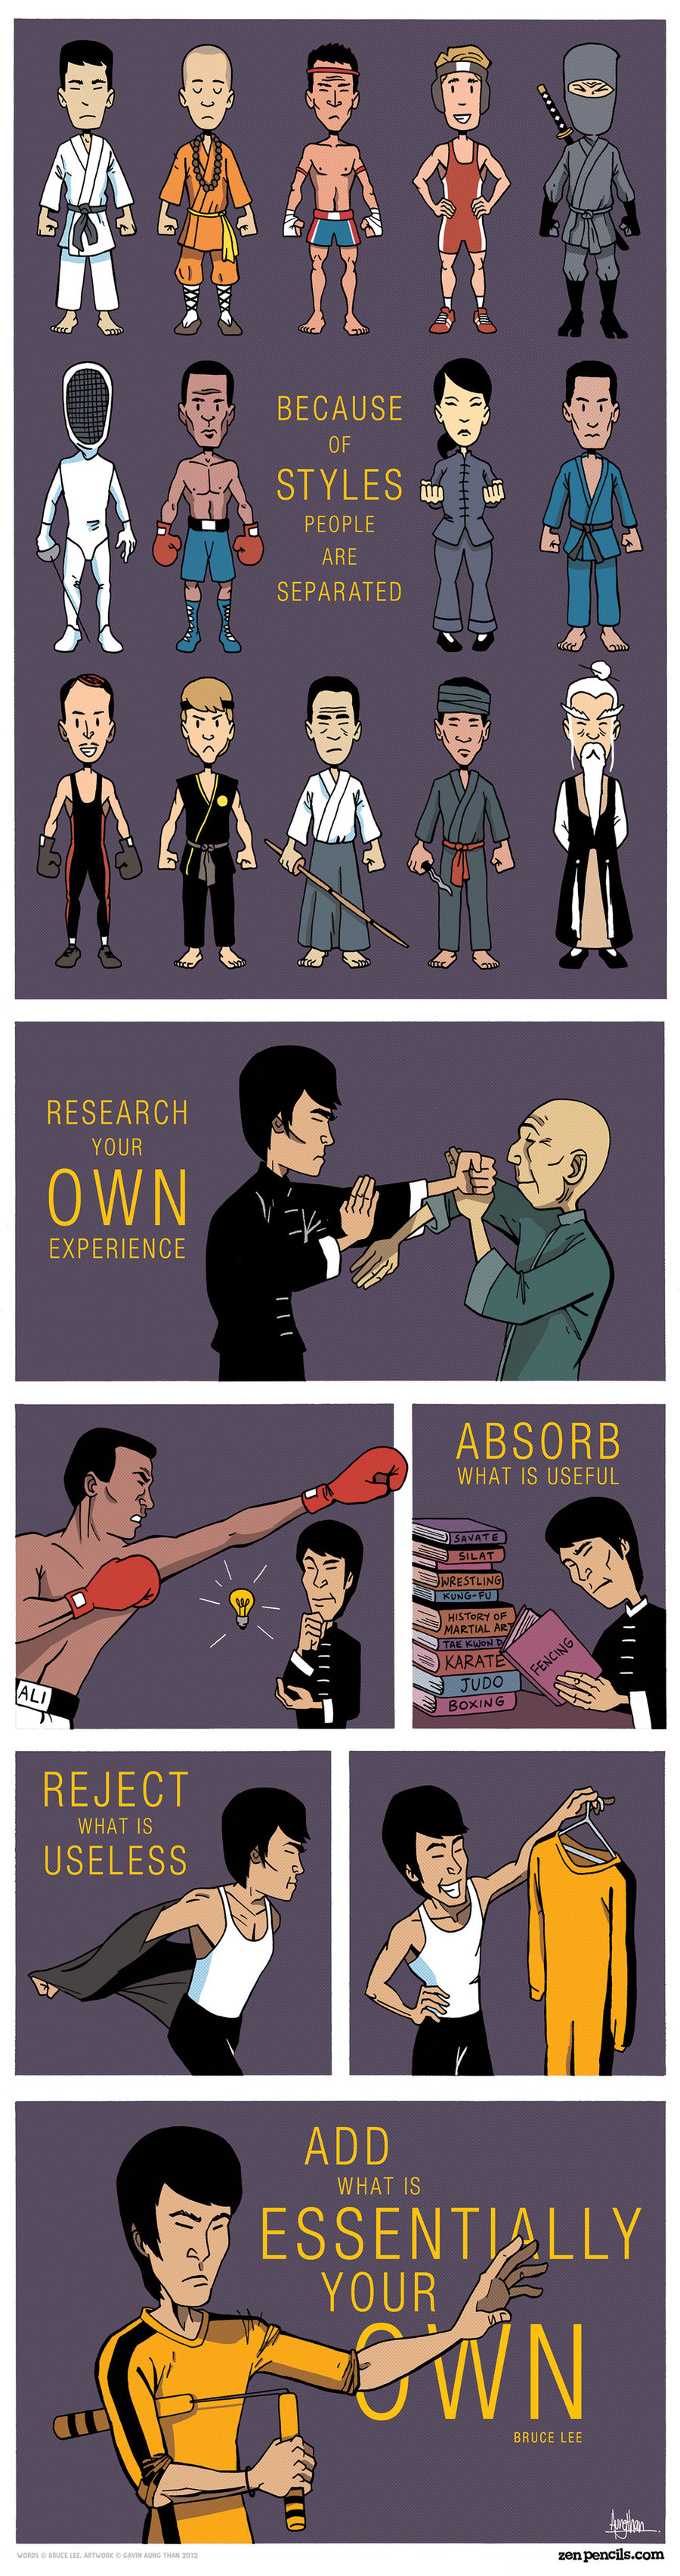 Zen Pencils for Sep 6, 2013 Comic Strip